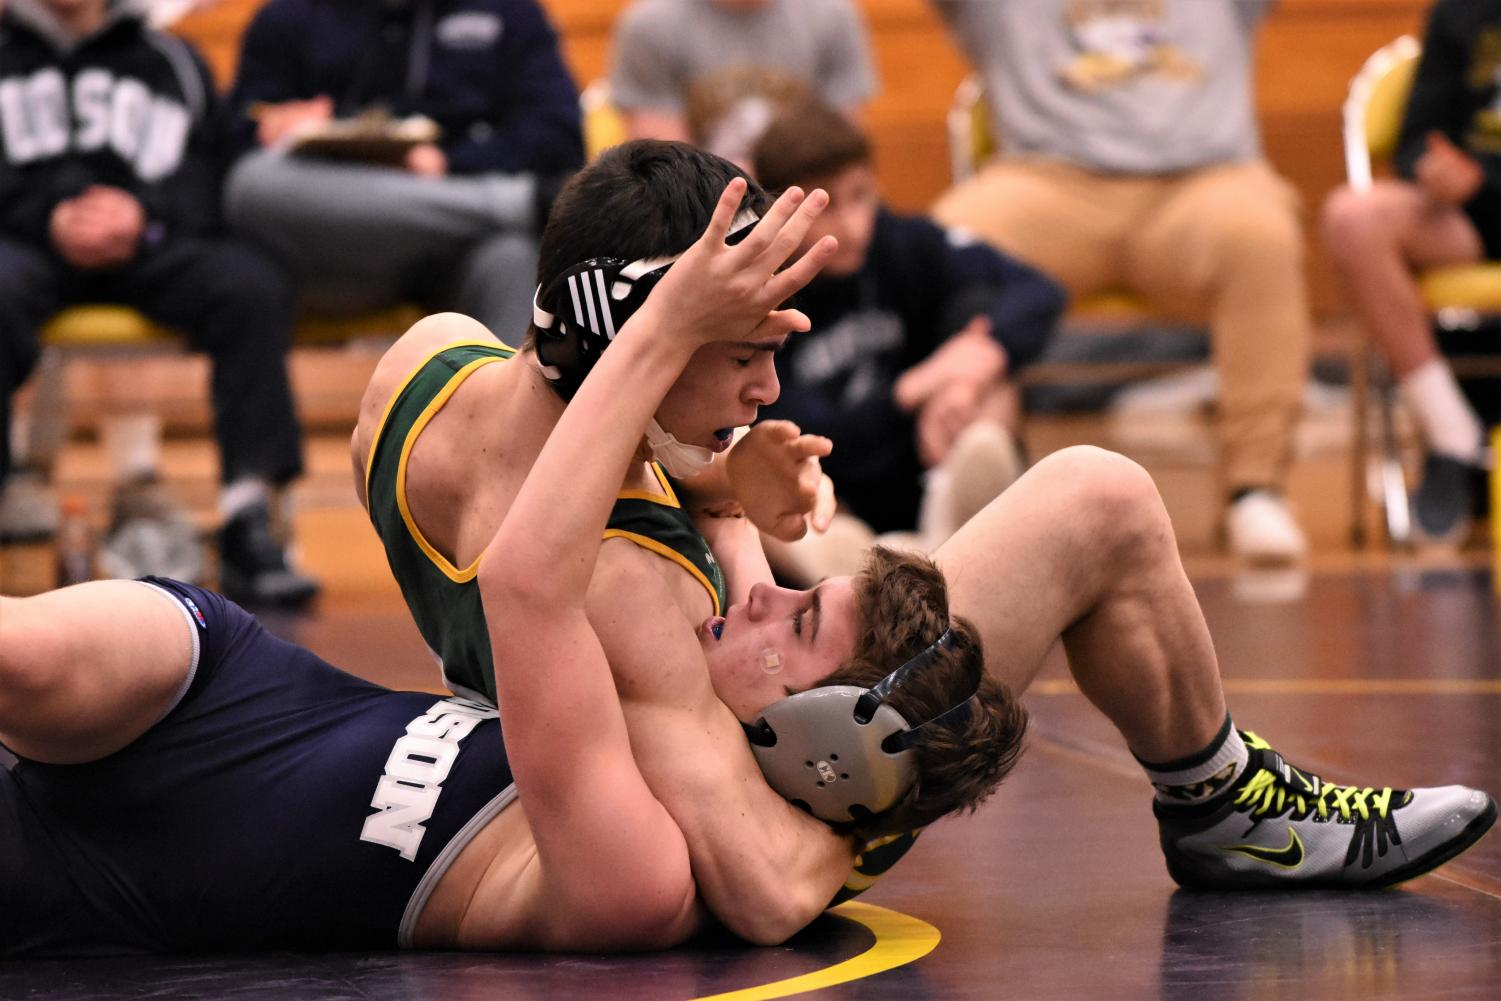 Wrestler pins opponent in head and arm pinning combination.